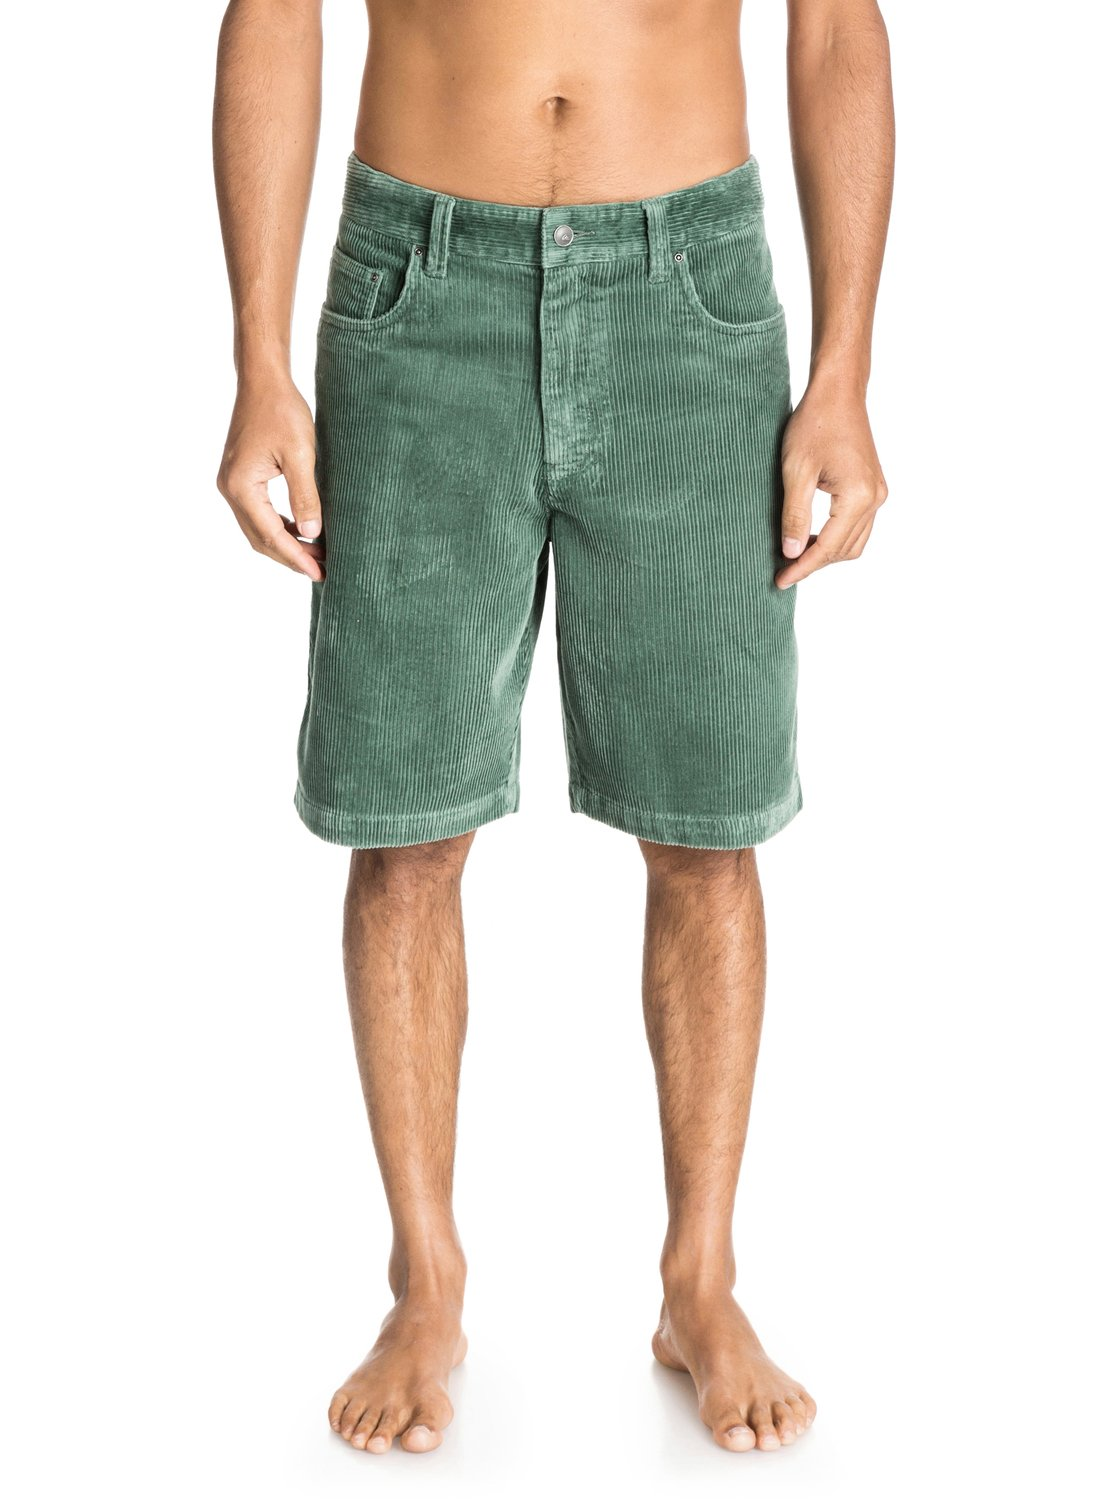 Corduroy Shorts Men ($ - $): 30 of items - Shop Corduroy Shorts Men from ALL your favorite stores & find HUGE SAVINGS up to 80% off Corduroy Shorts Men, including GREAT DEALS like Original Penguin Bedford Corduroy Shorts at Nordstrom Rack - Mens Shorts - Casual Shorts ($).